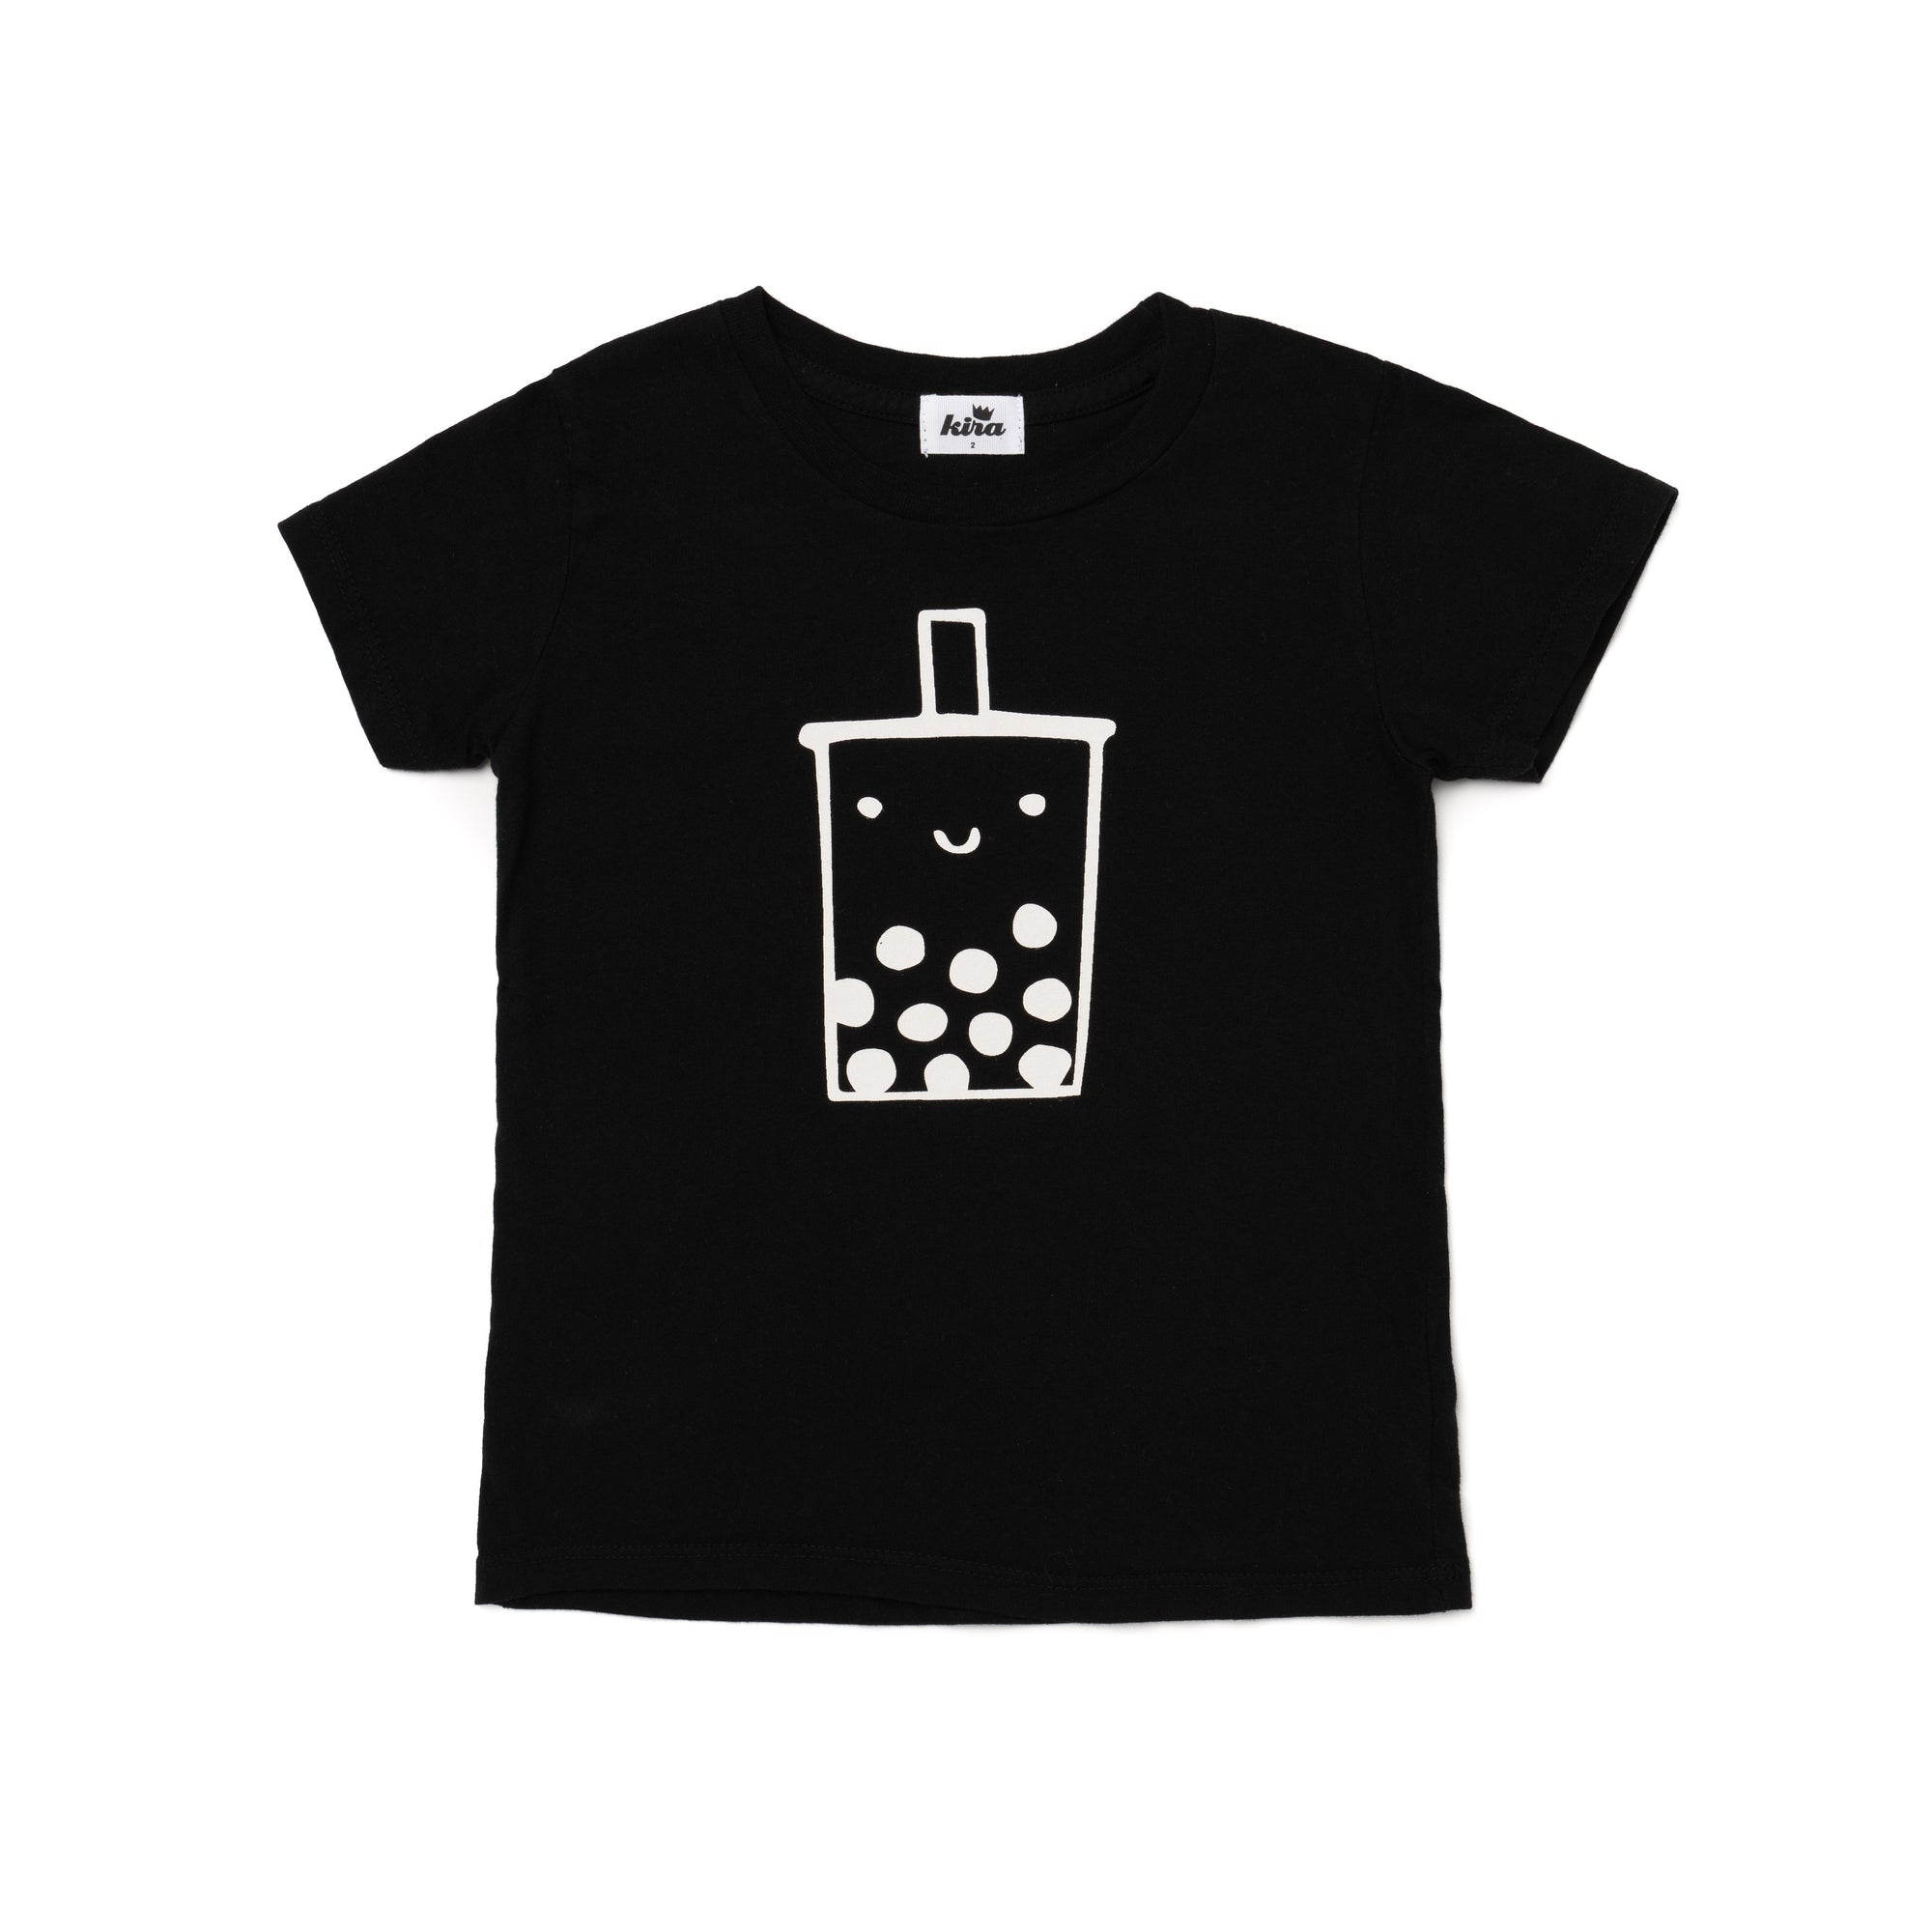 Boba Graphic Short Sleeve T-shirt, Black